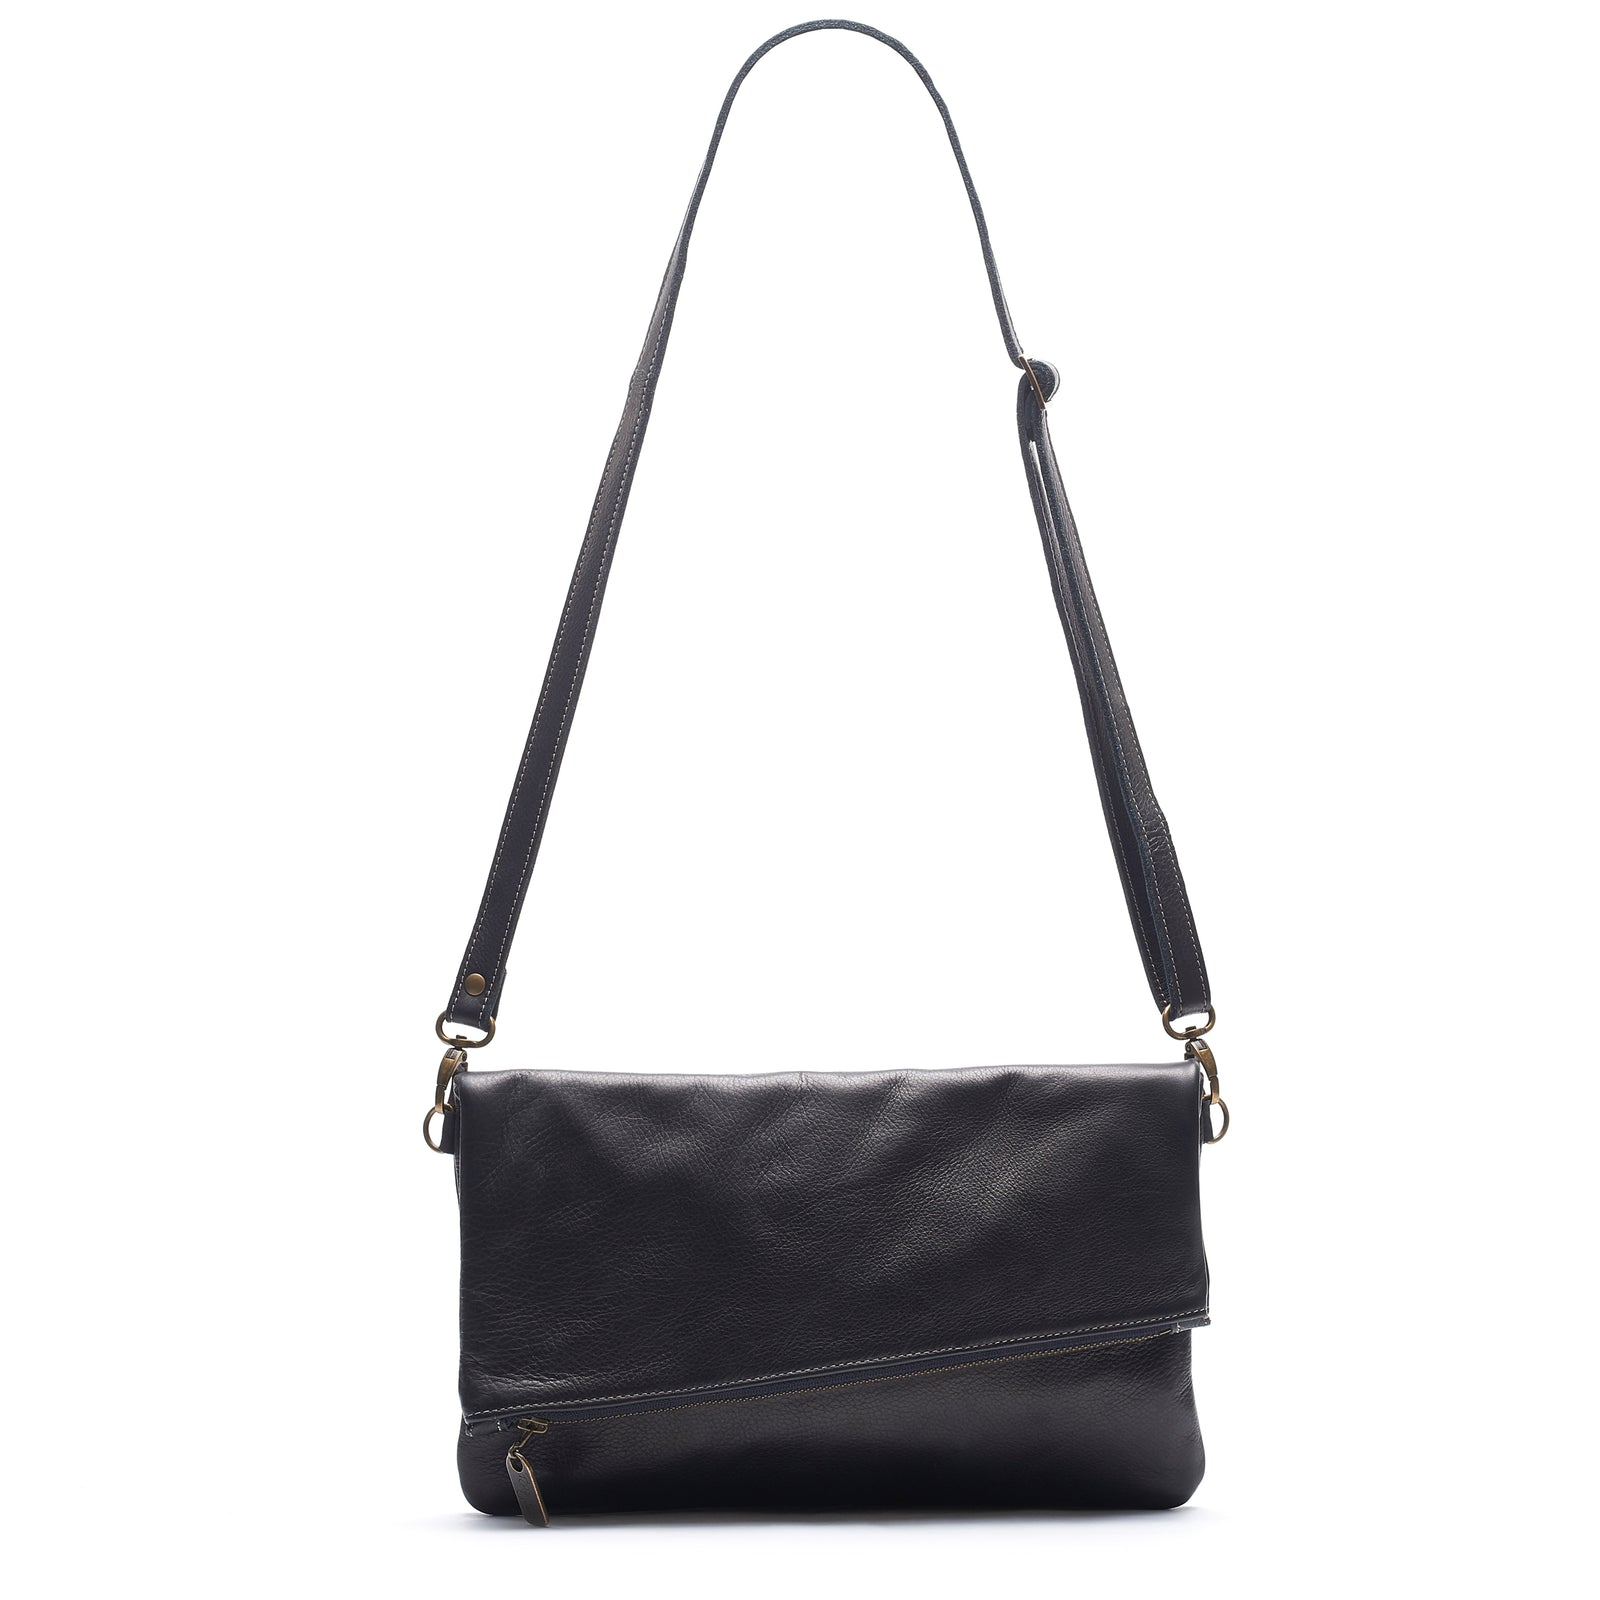 Jenne Foldover Crossbody - Black Sand - Brynn Capella, Clutch